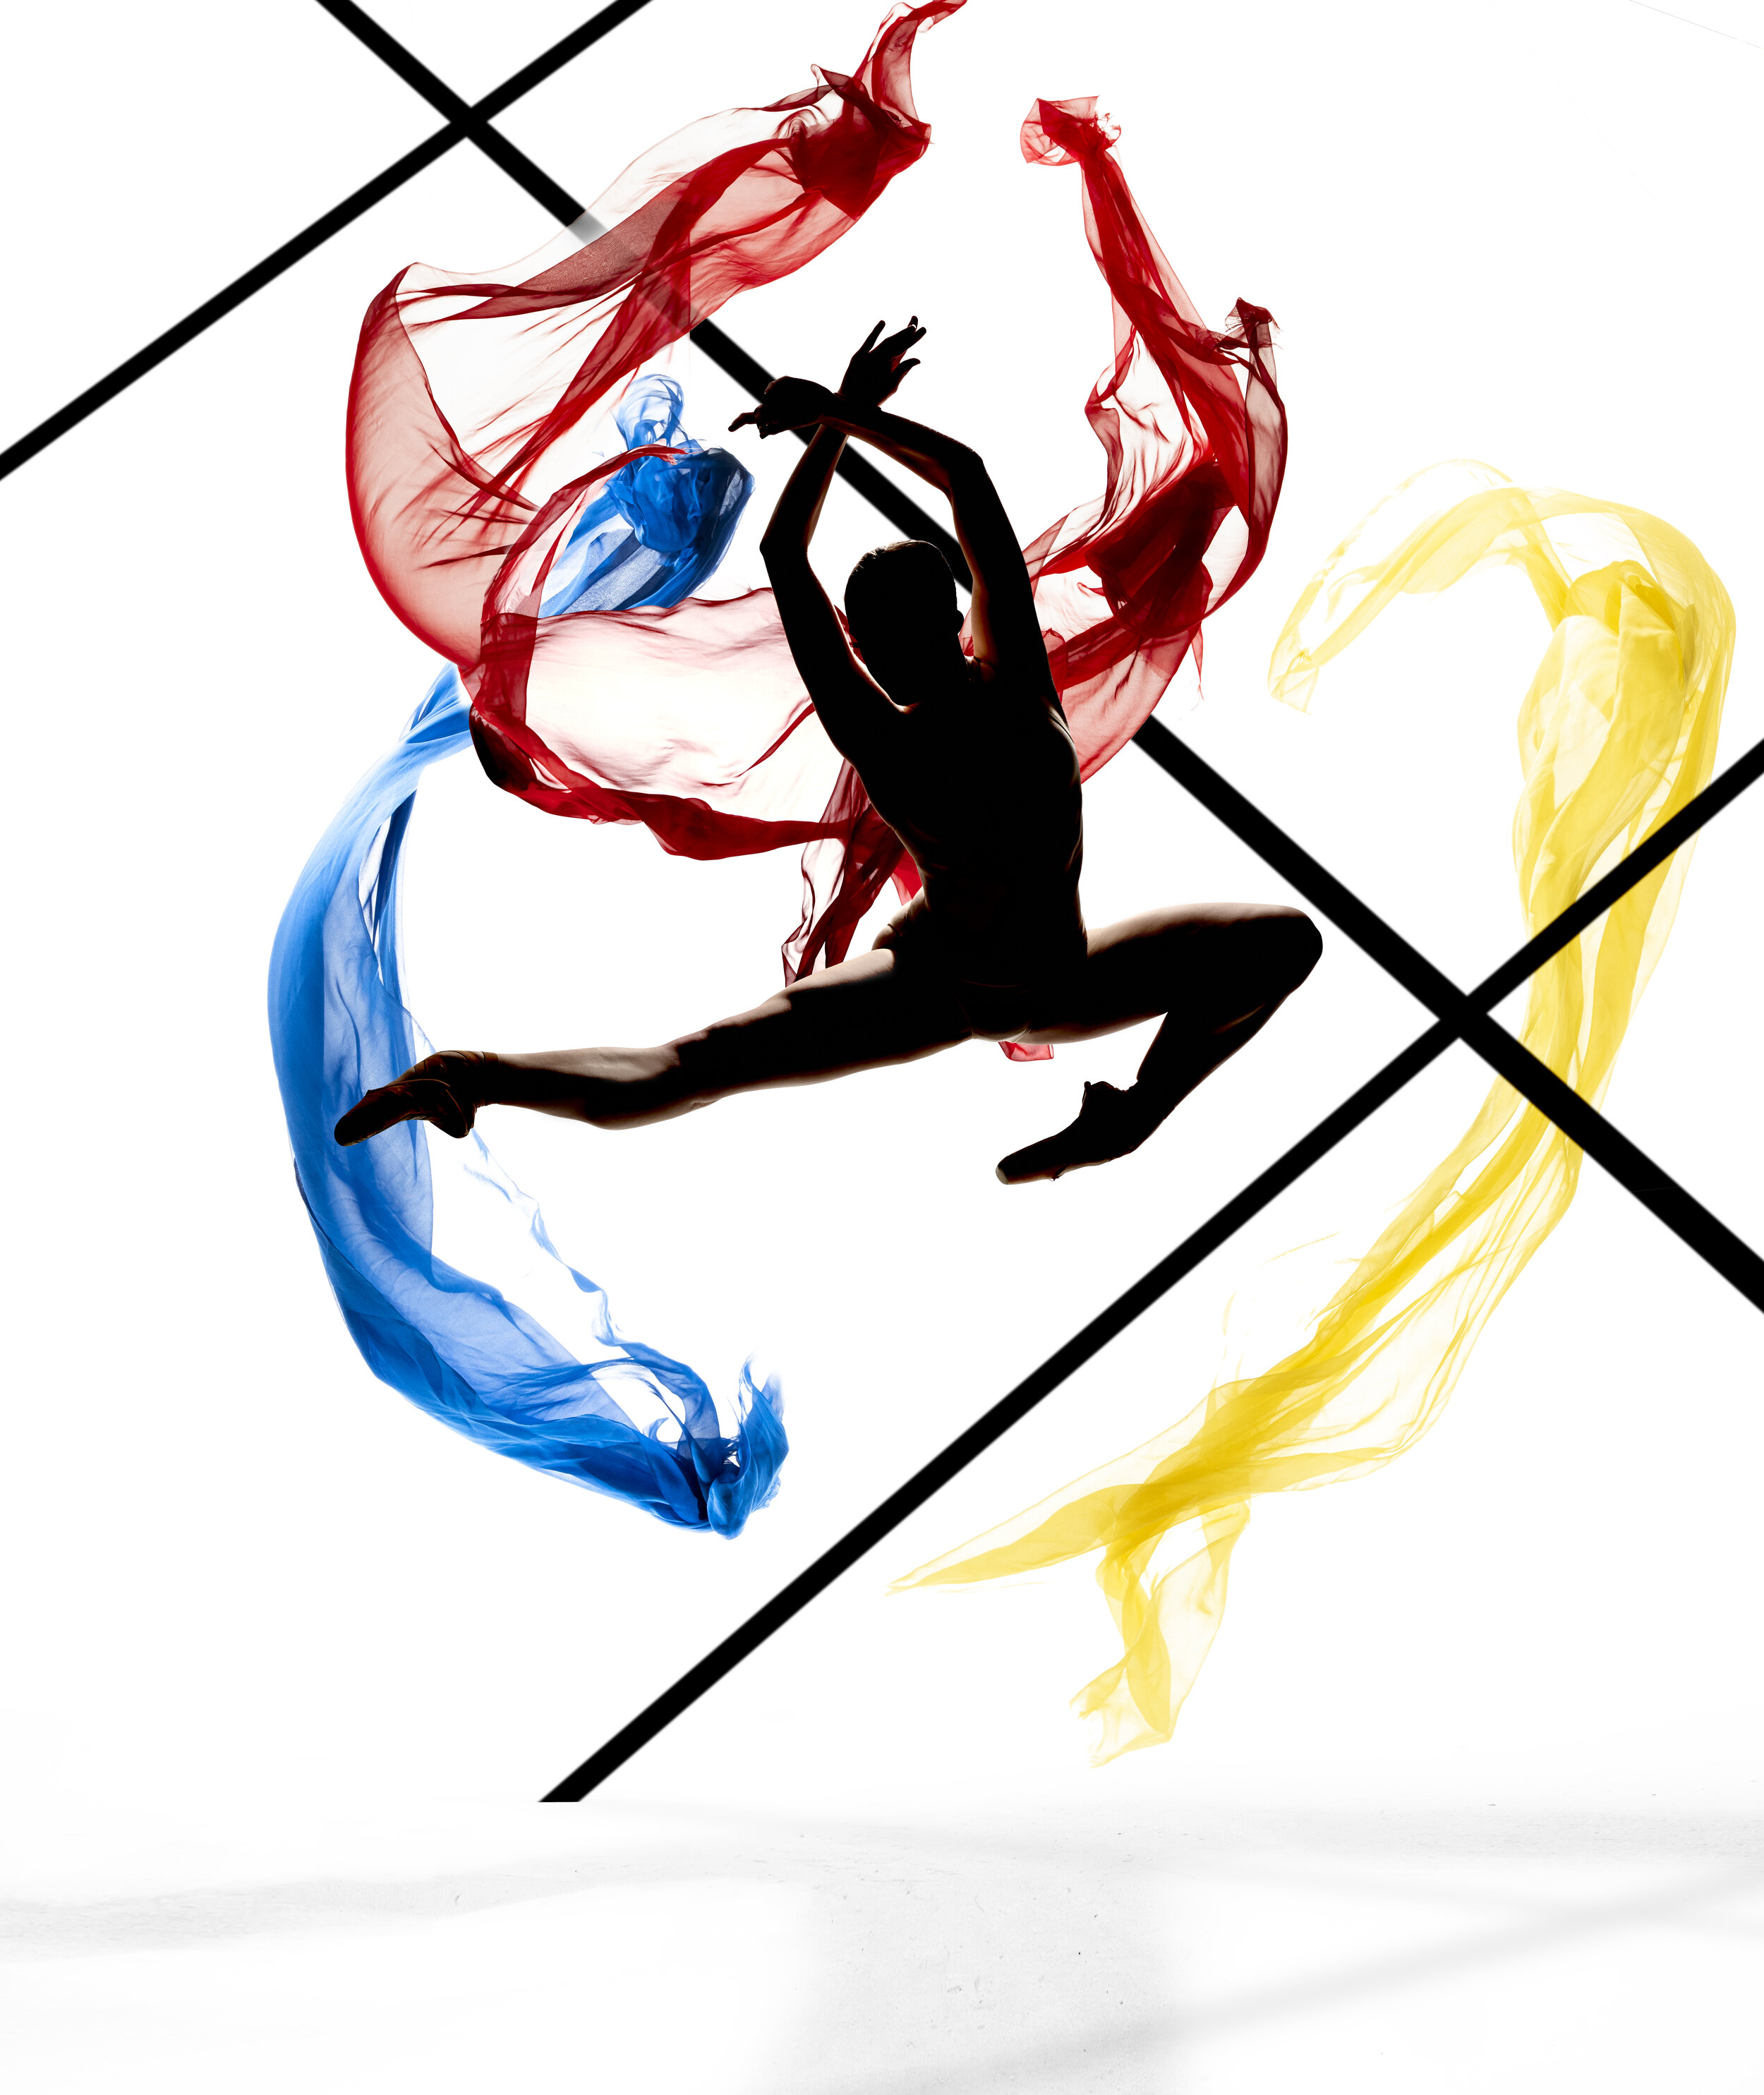 """Fall gala   October 19, 2019@ 7:30pm - Atlanta Youth Ballet presents their annual Gala, """"Minimalism"""". This production will include a mix of Classical Ballet and original Contemporary works. In addition to our company dancers, we will have various professional guest artists from across the country, coming to perform. This is a night that you will not want to miss!Venue: The Byers Theatre at the City Springs Performing Arts CenterTickets: $20 - $35Click here to get your tickets before it's too late!Click here to MAKE A DONATION."""